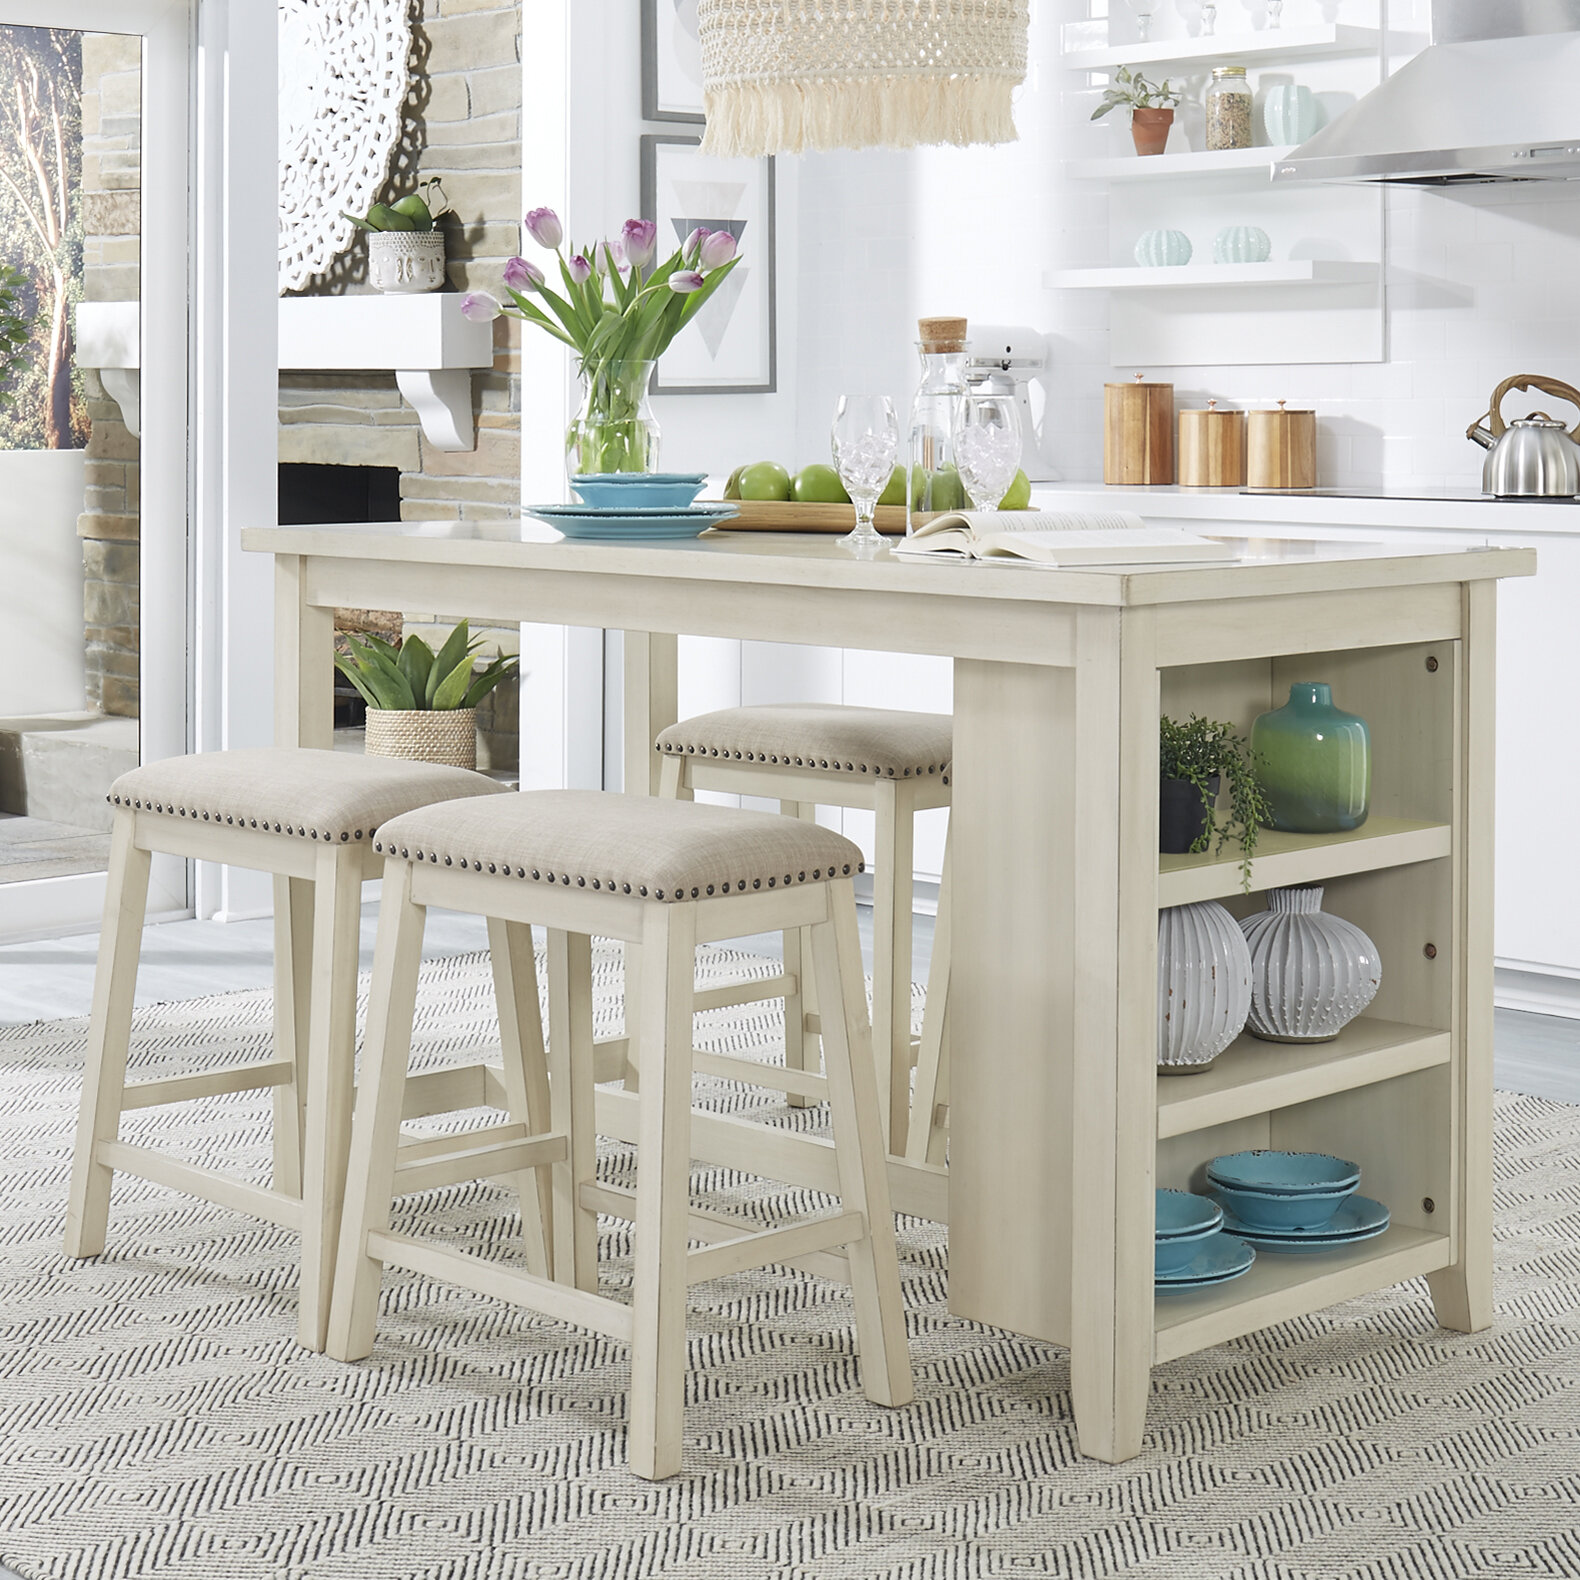 Three Posts™ Latour 5 Piece Counter Height Breakfast Nook Dining